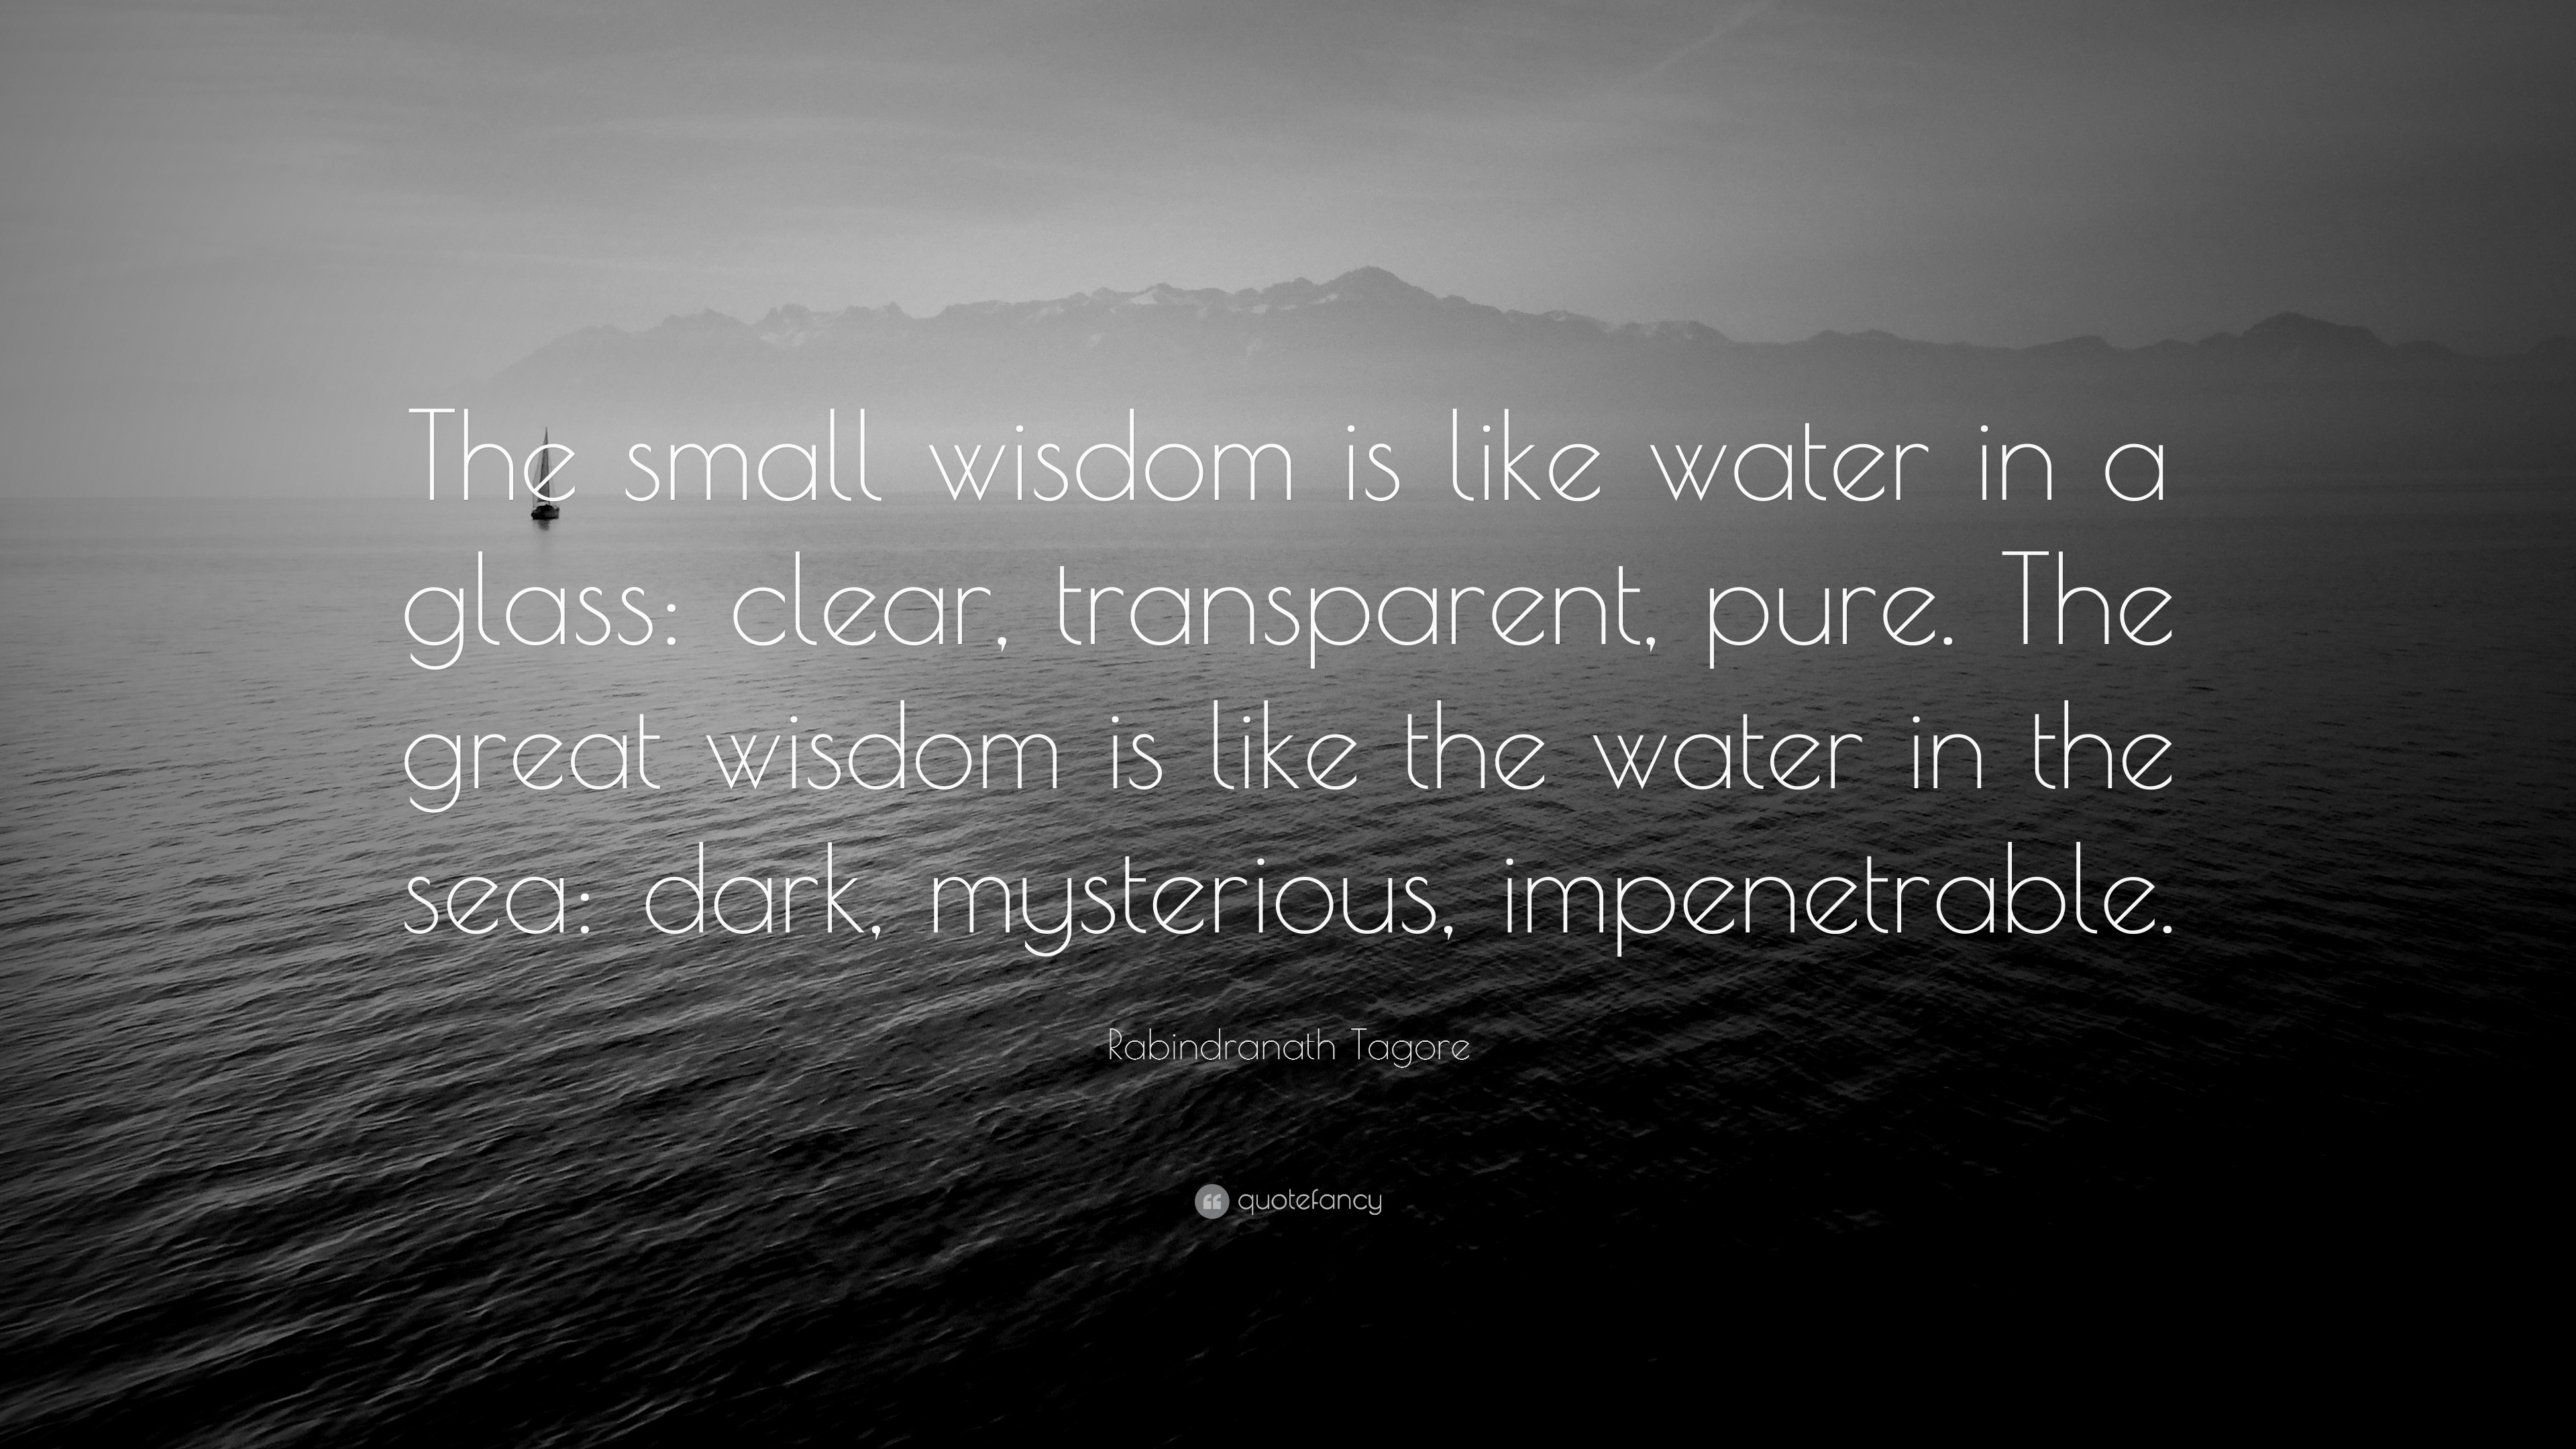 Rabindranath Tagore Quote: U201cThe Small Wisdom Is Like Water In A Glass: Clear